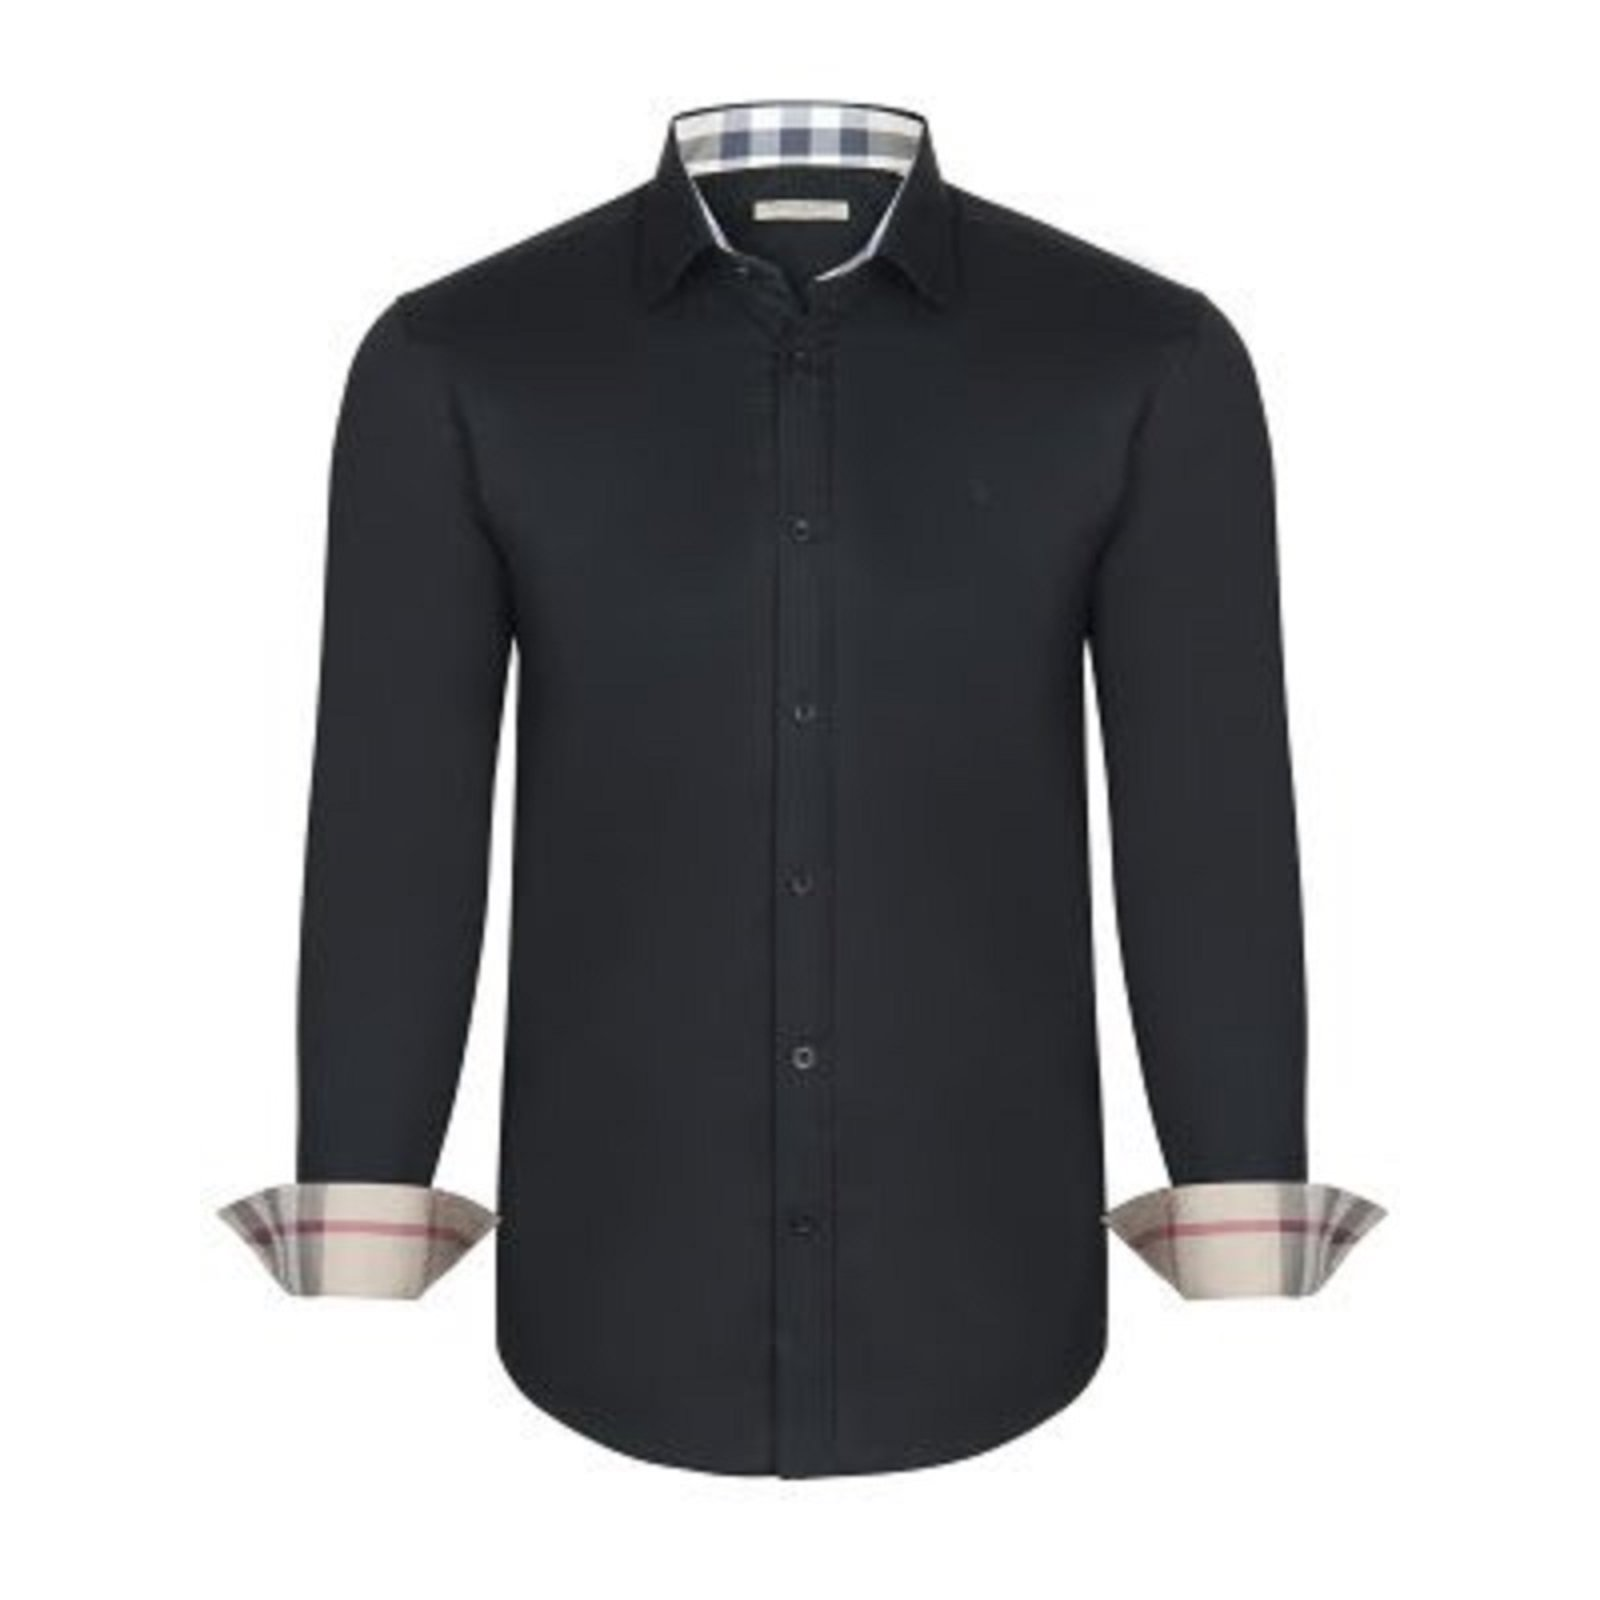 black and white burberry shirt